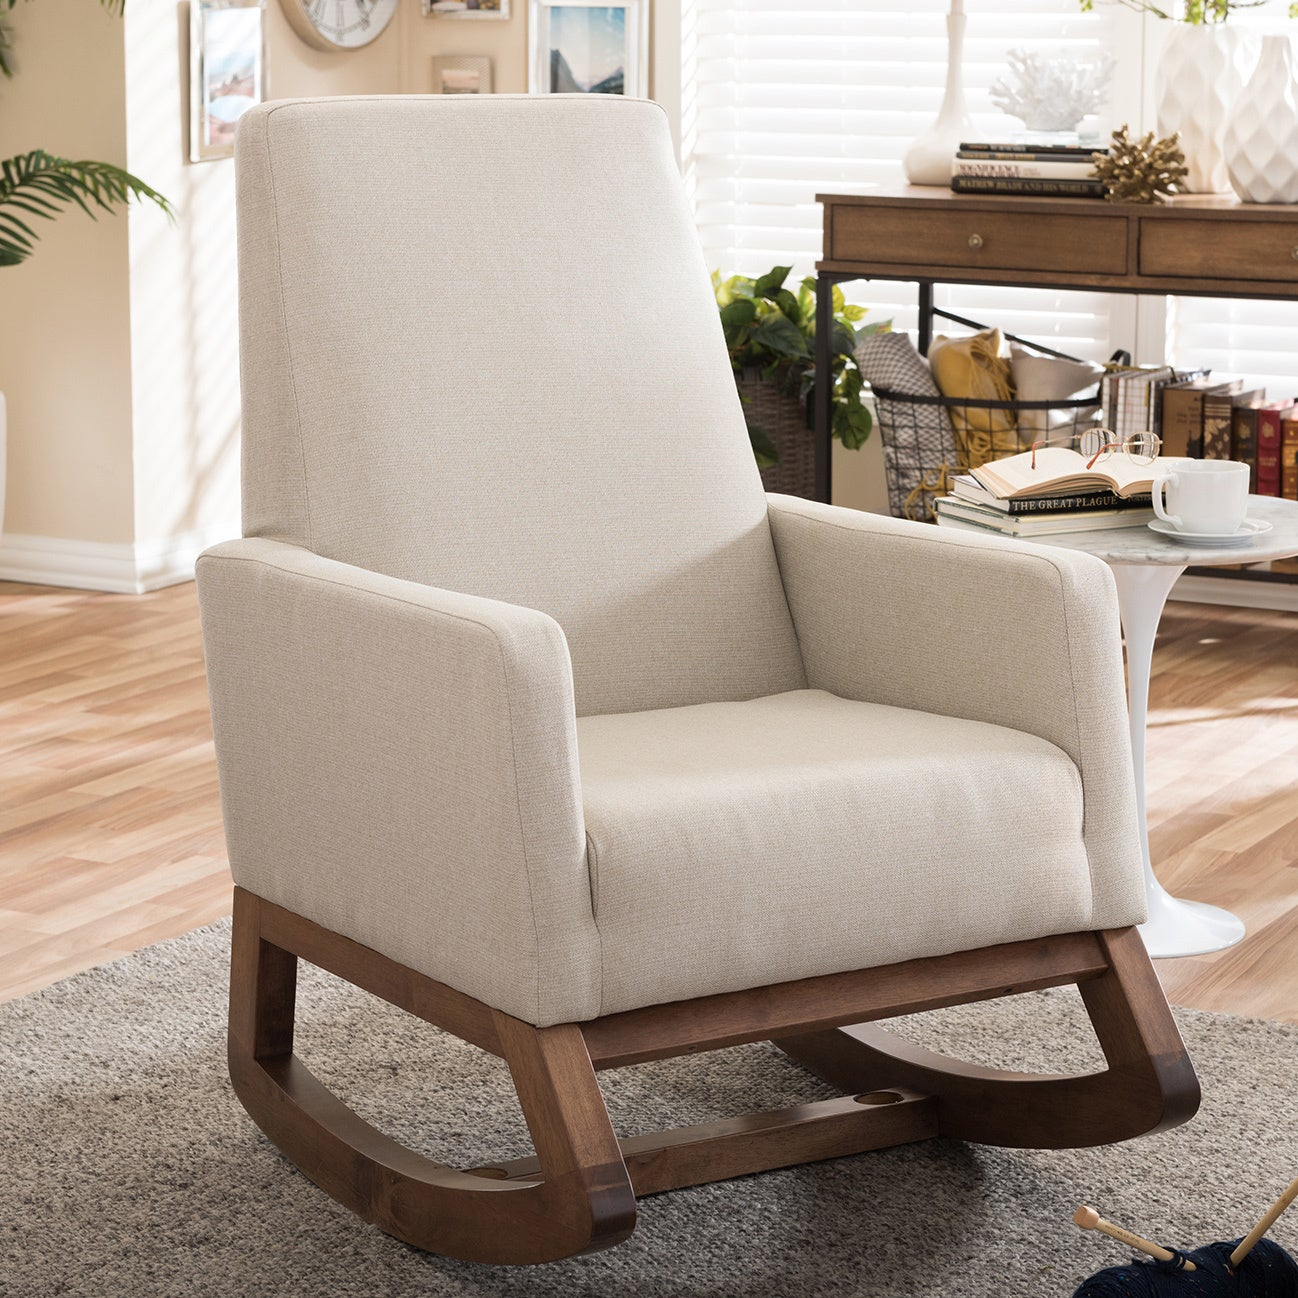 Astonishing Carson Carrington Honningsvag Mid Century Modern Light Beige Upholstered Rocking Chair Creativecarmelina Interior Chair Design Creativecarmelinacom